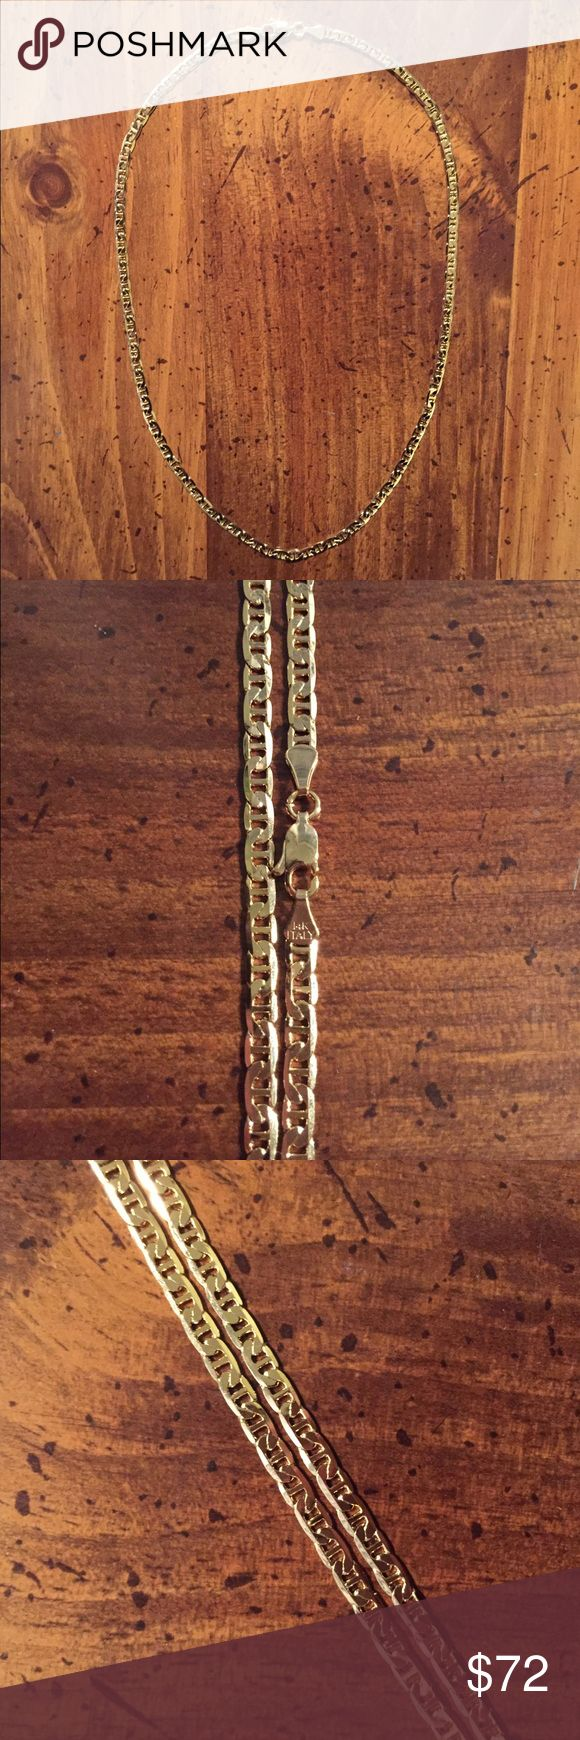 """🆕 14k Italian Gold Filled Gucci Link Chain Brand new! Gorgeous 14k Italian Gold Gucci Link 18"""" Chain. With lobster clasp and 14k ITALY stamp! Will take offers! Jewelry Necklaces"""